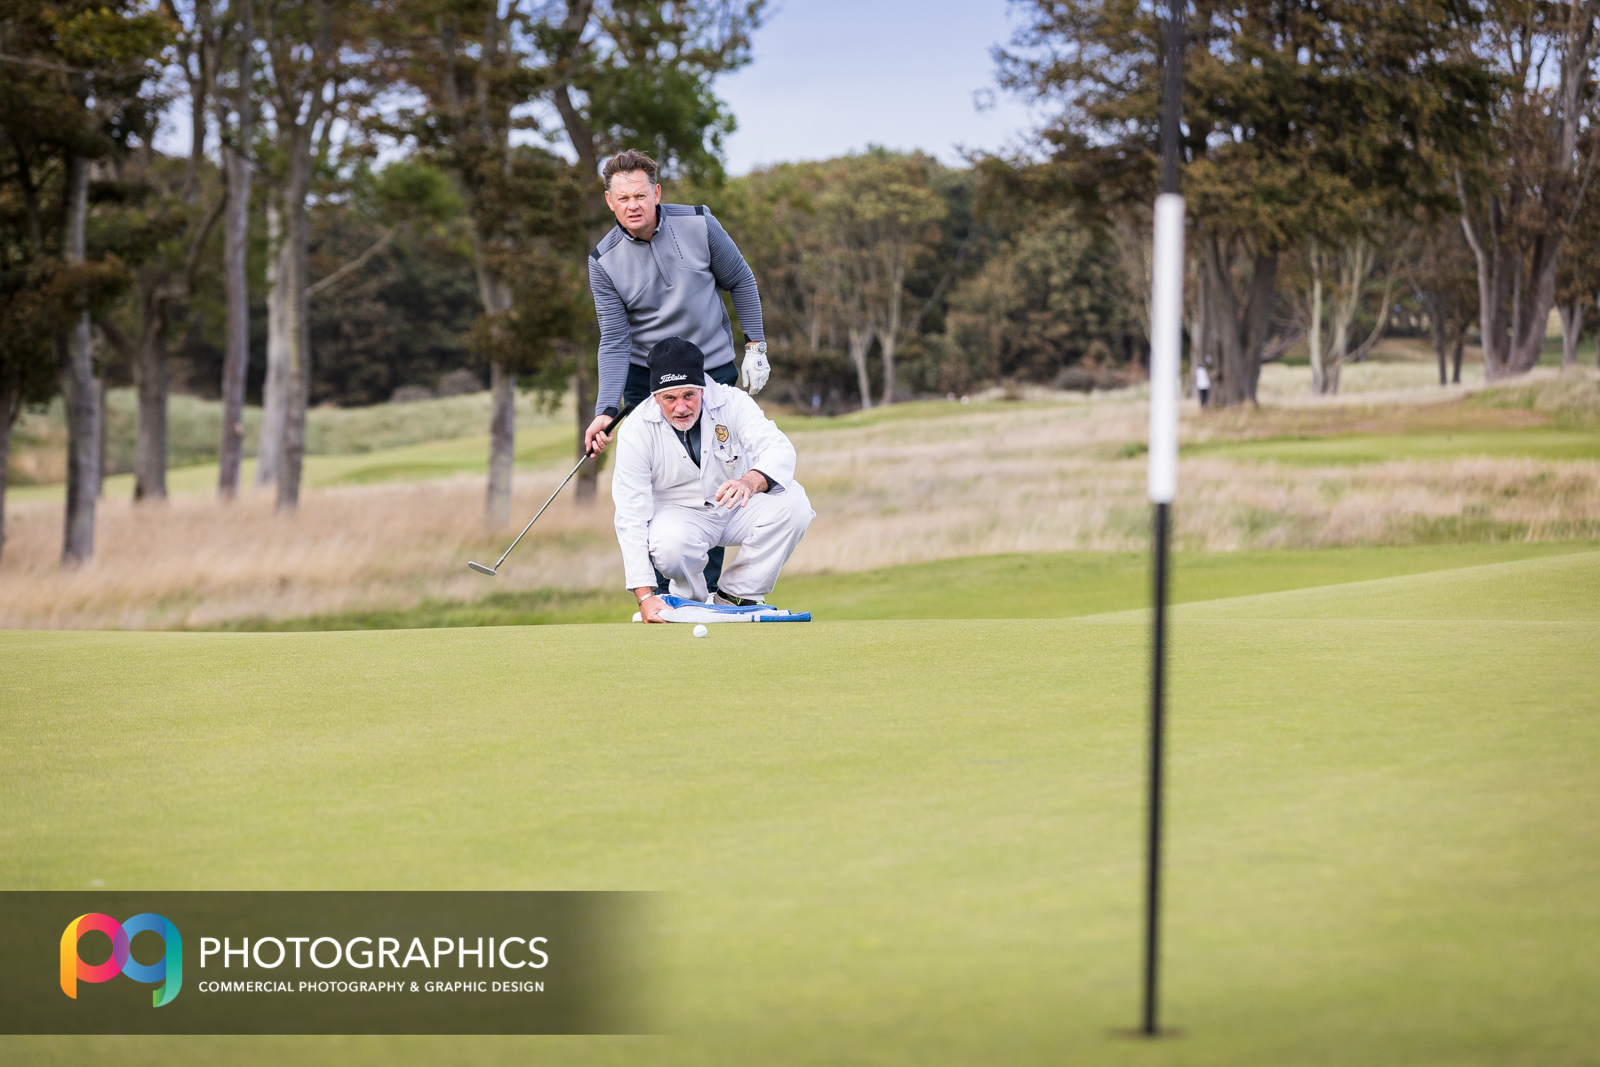 charity-golf-pr-event-photography-glasgow-edinburgh-scotland-22.jpg